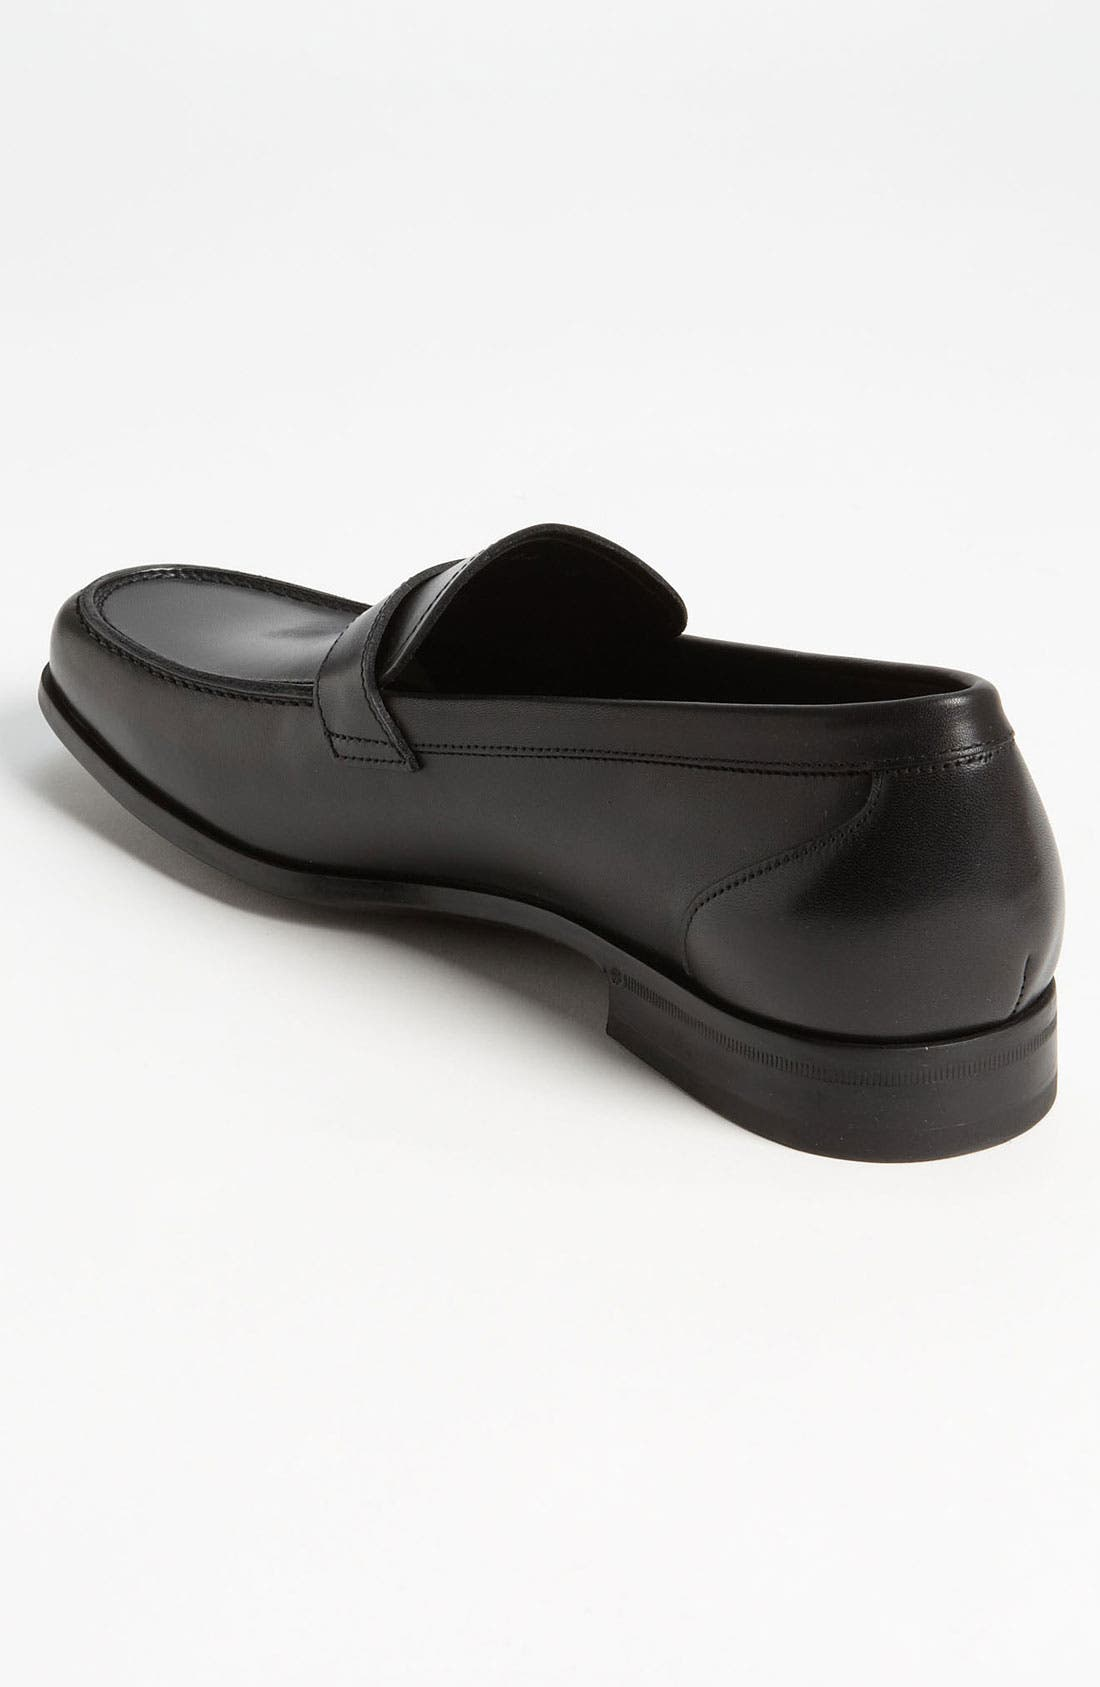 Alternate Image 2  - Salvatore Ferragamo 'Tazio' Loafer (Men)